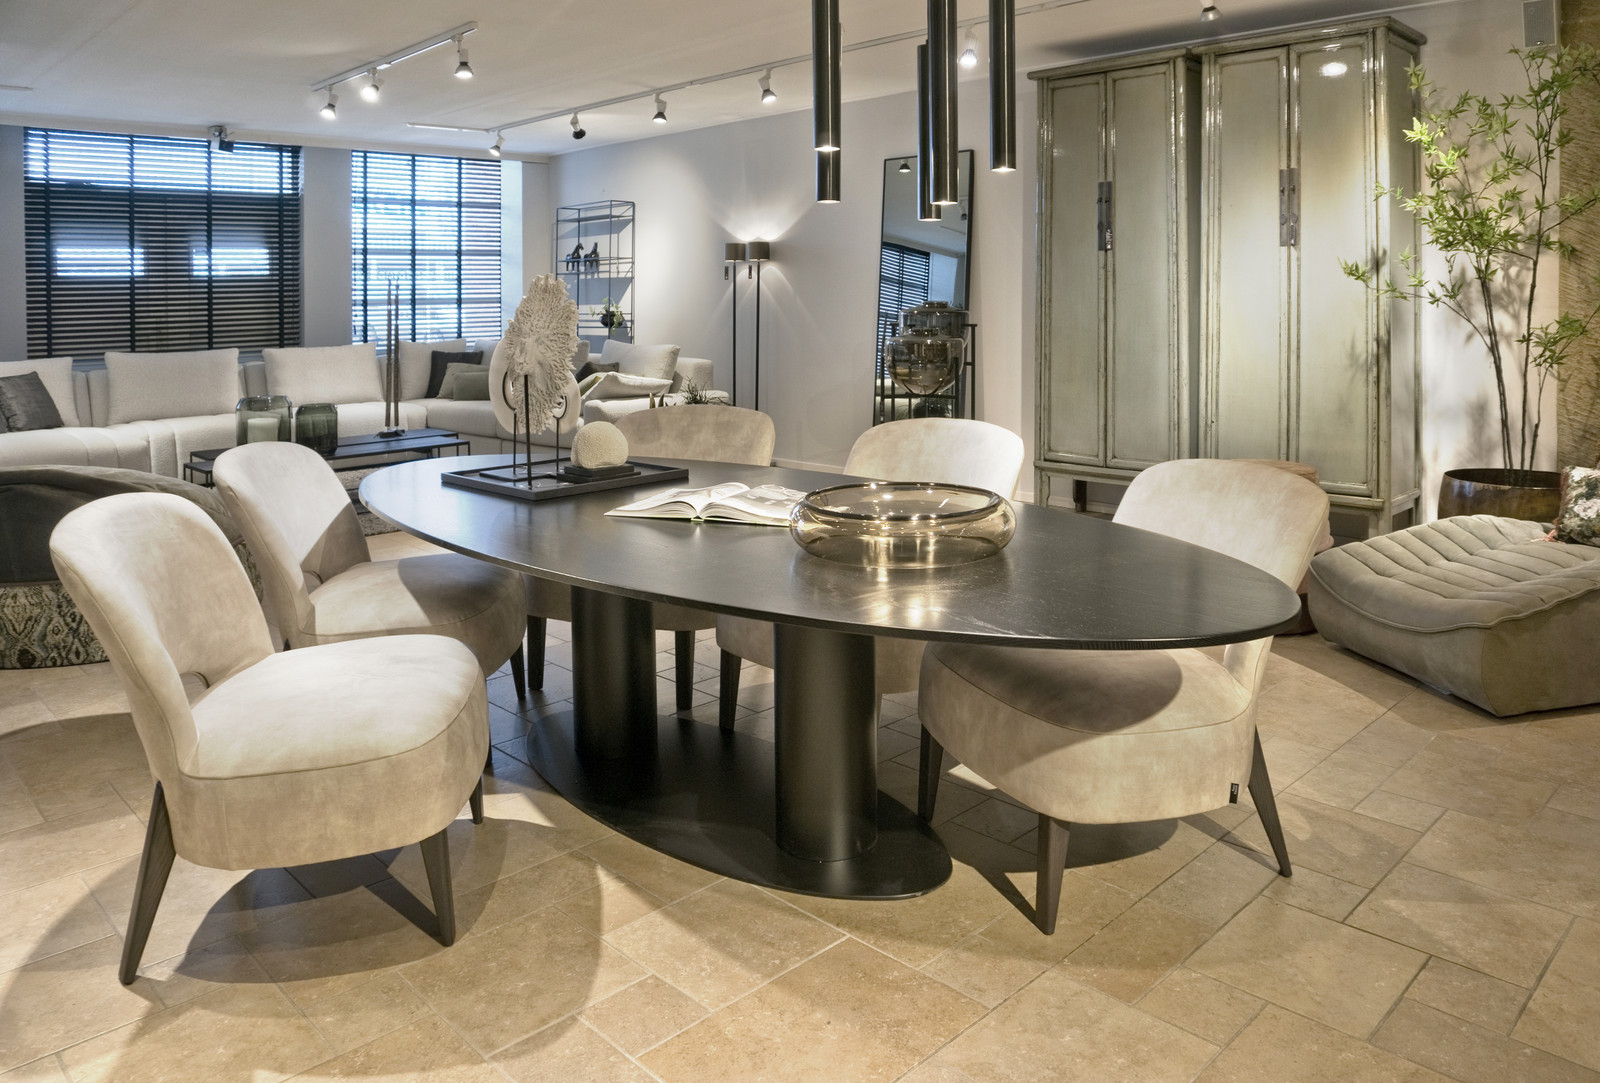 Buddha Dining Table Ellipse Tables Looiershuis